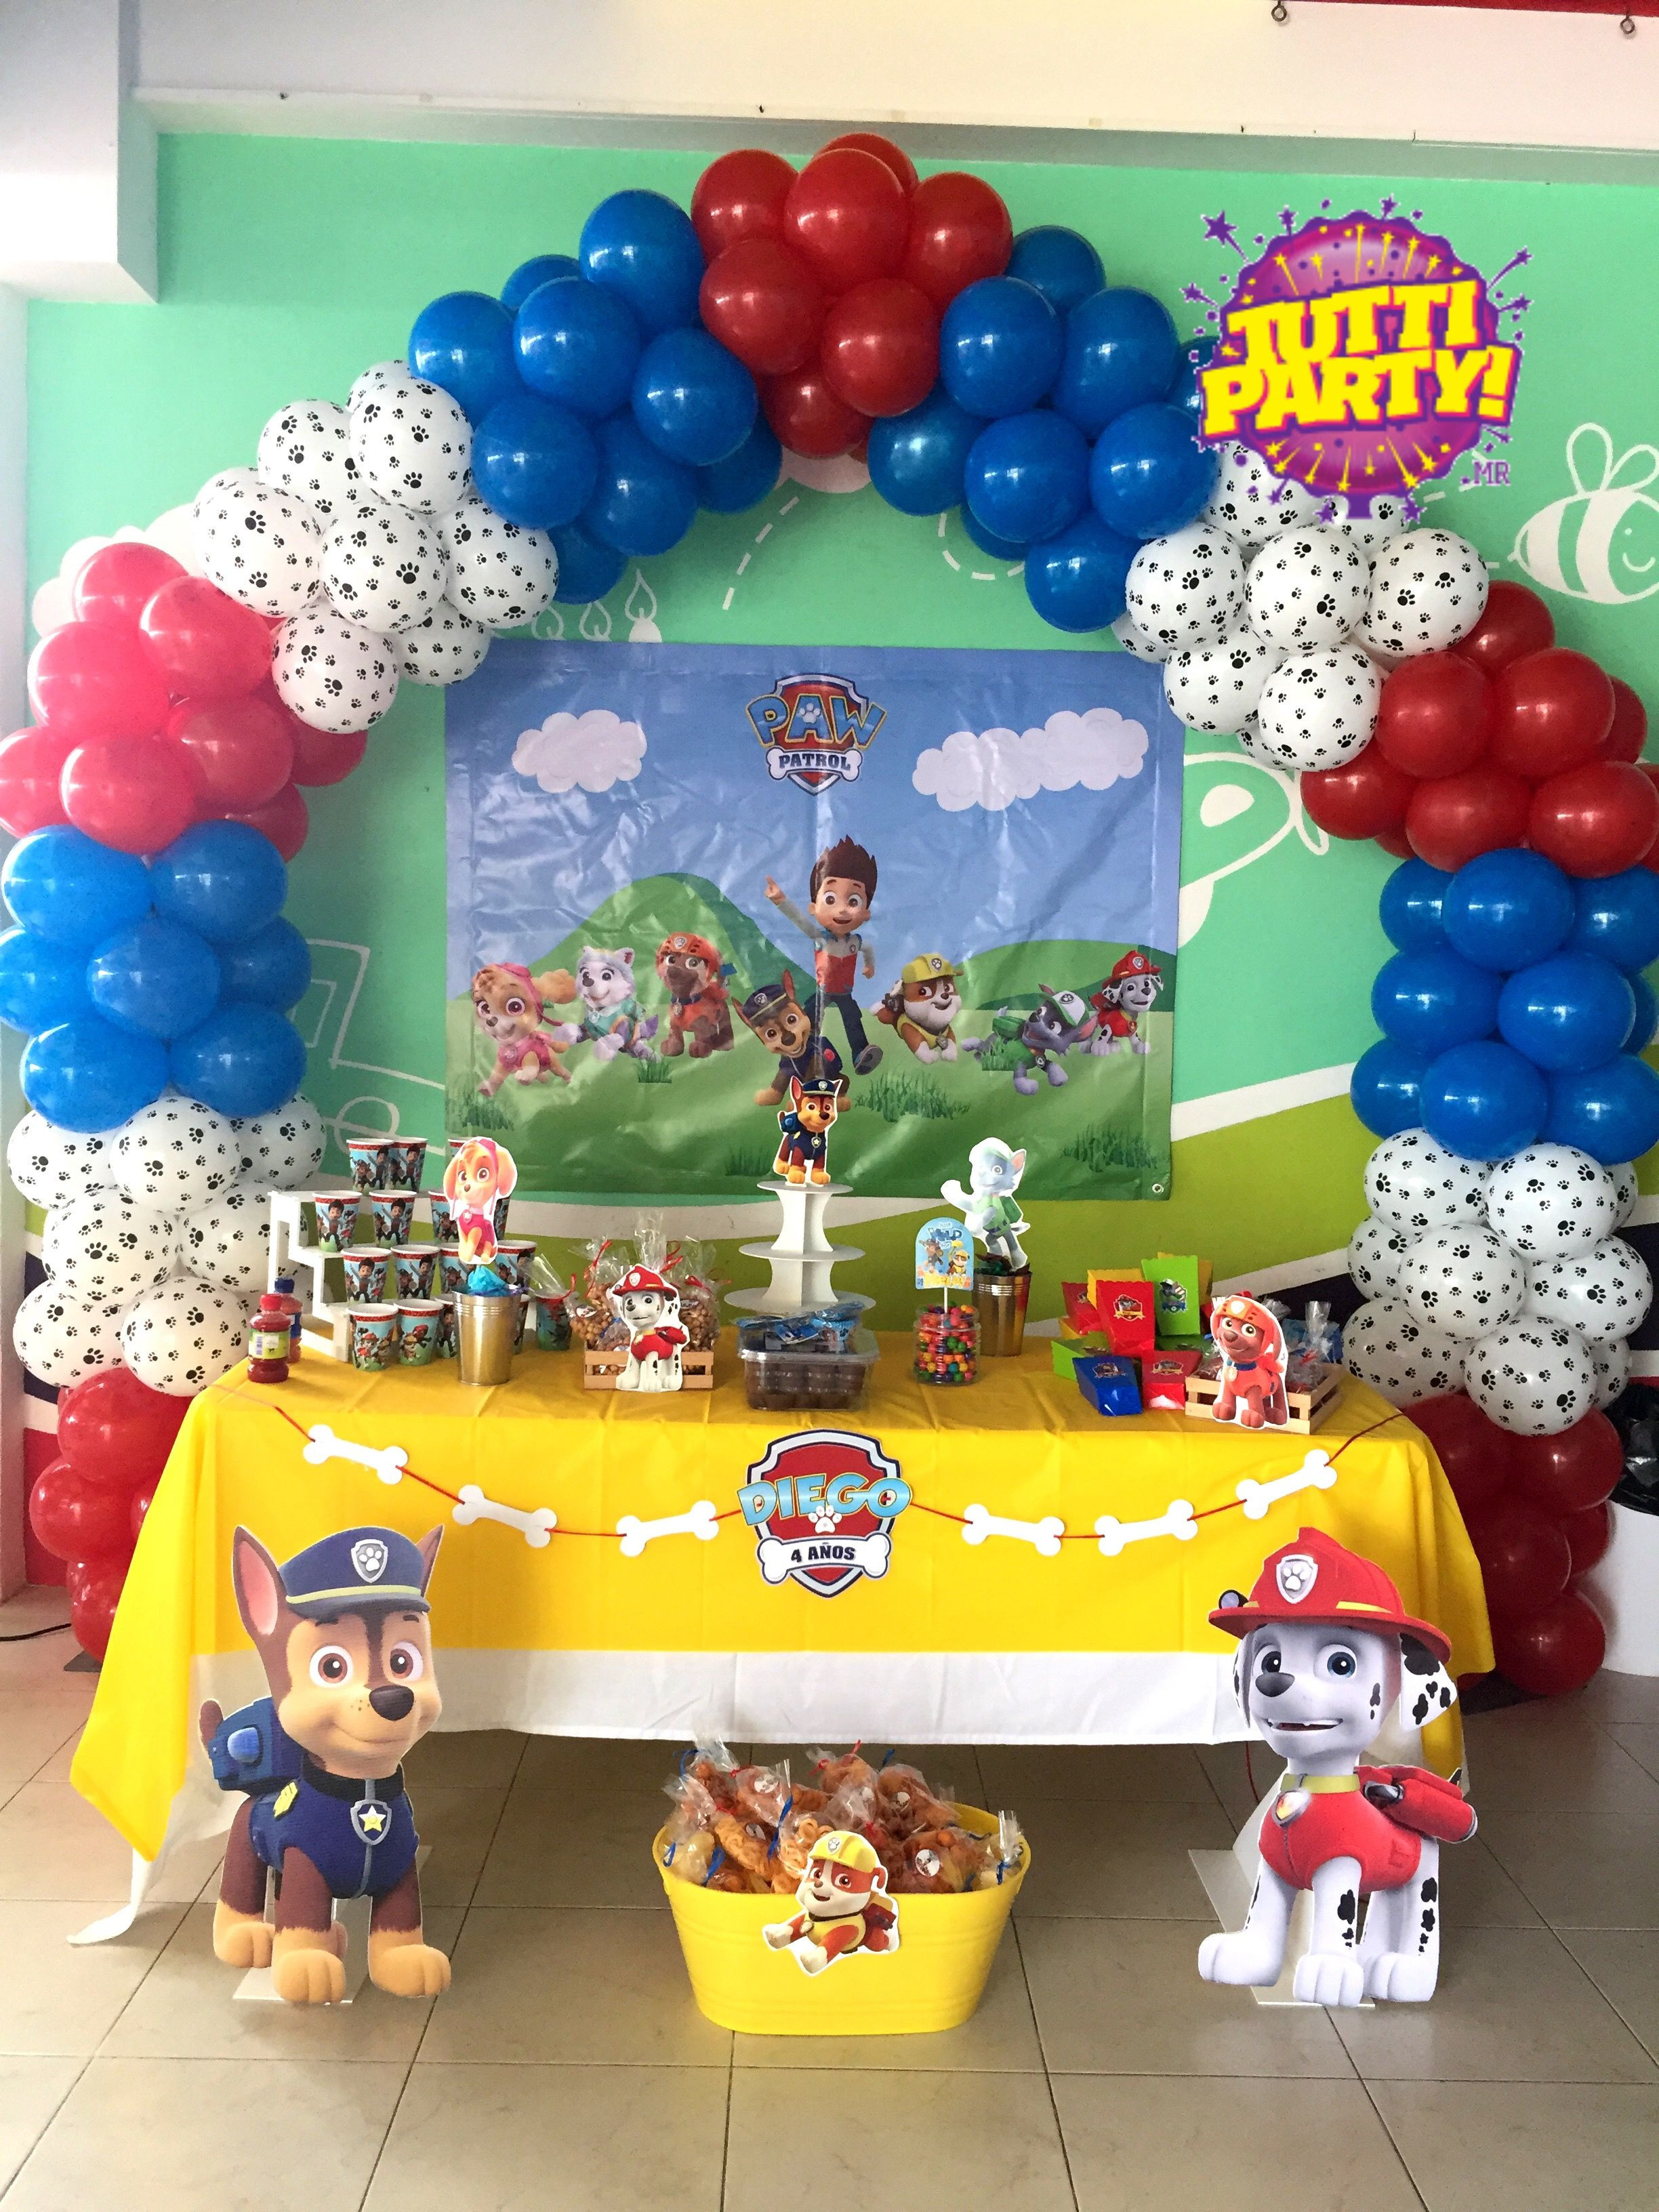 Best ideas about Paw Patrol Birthday Decor . Save or Pin Paw patrol arch balloons decorations paw patrol Party Now.